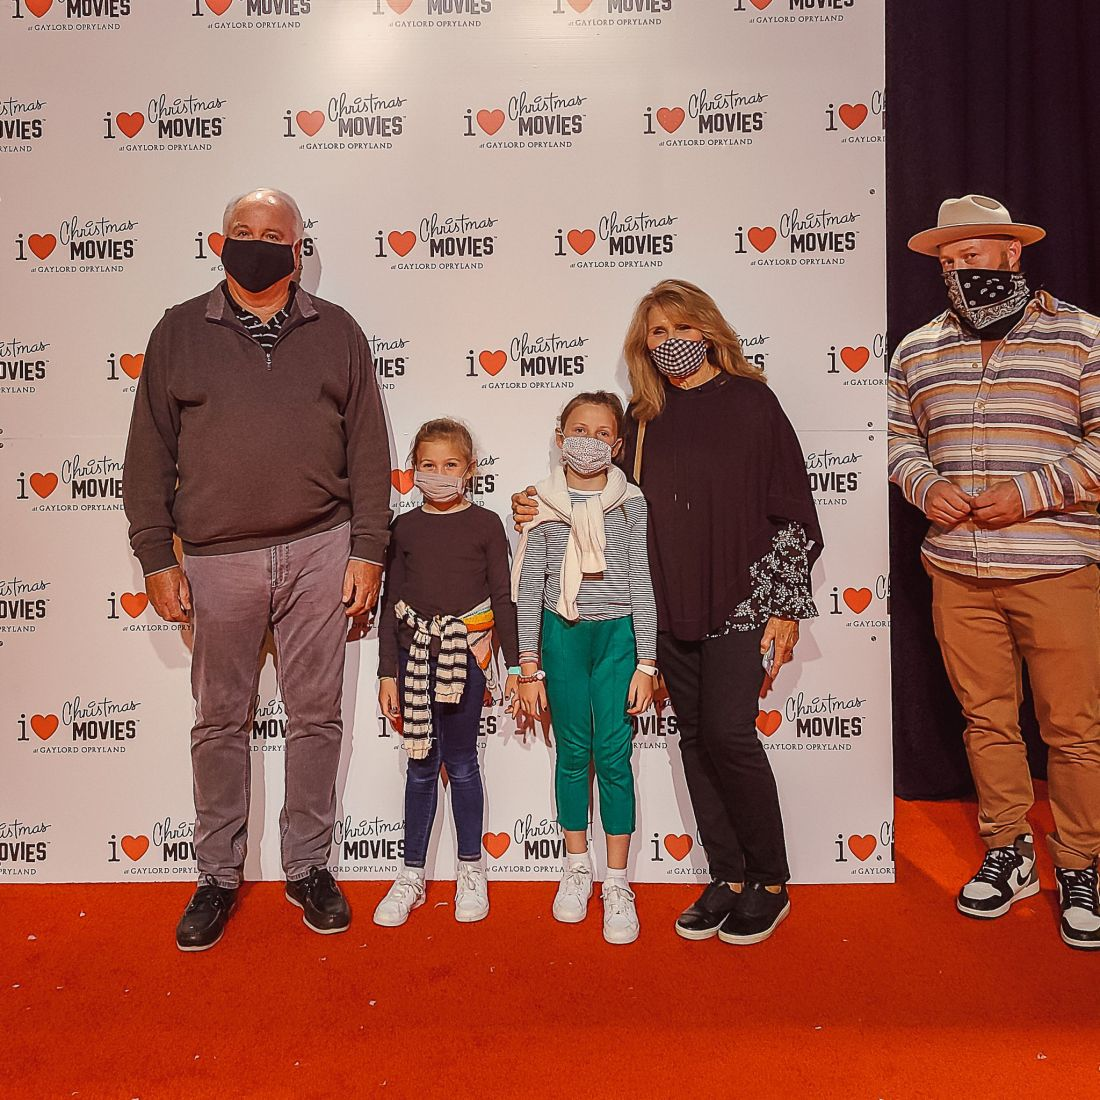 Gaylord Opryland Christmas by popular Nashville blog, Modern Day Moguls: image of two girls standing with their grandparents and their dad for a red carpet I love Christmas Movies picture.